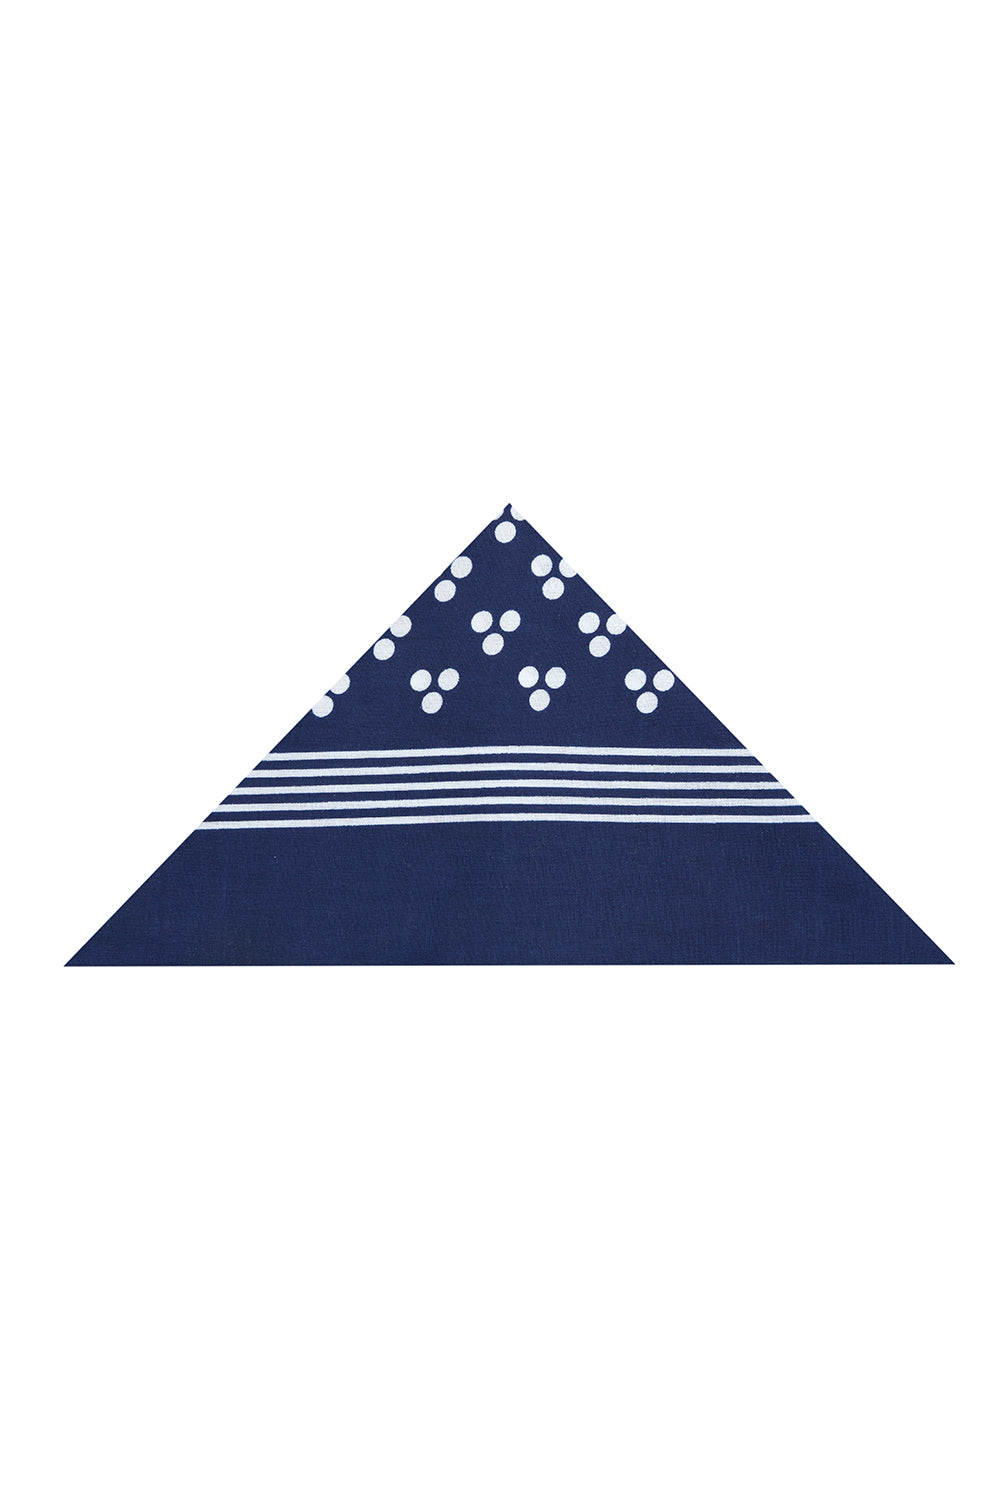 Regent - Cotton Hanky - Bandana - Navy with White Spot - Regent Tailoring